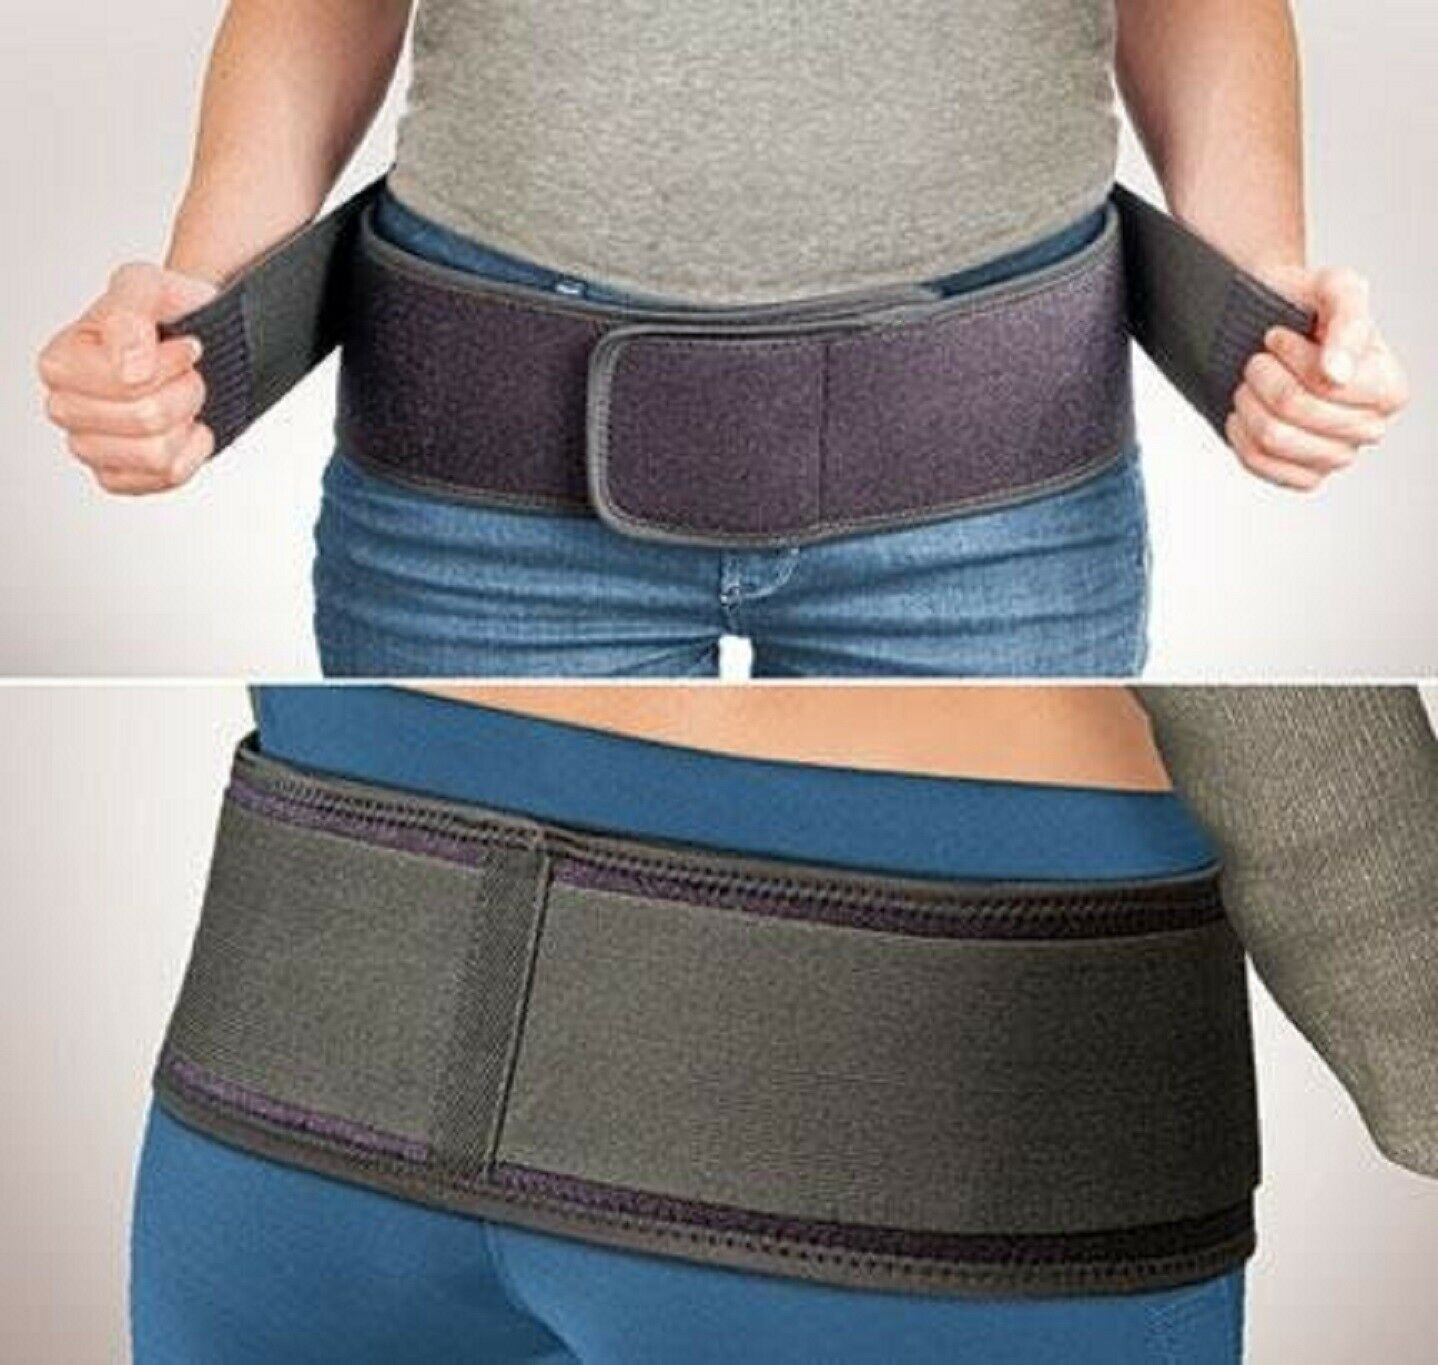 Pelvic Back Pain Belt SI Wrap Support Therapy Therapeutic Compression Support Health & Beauty